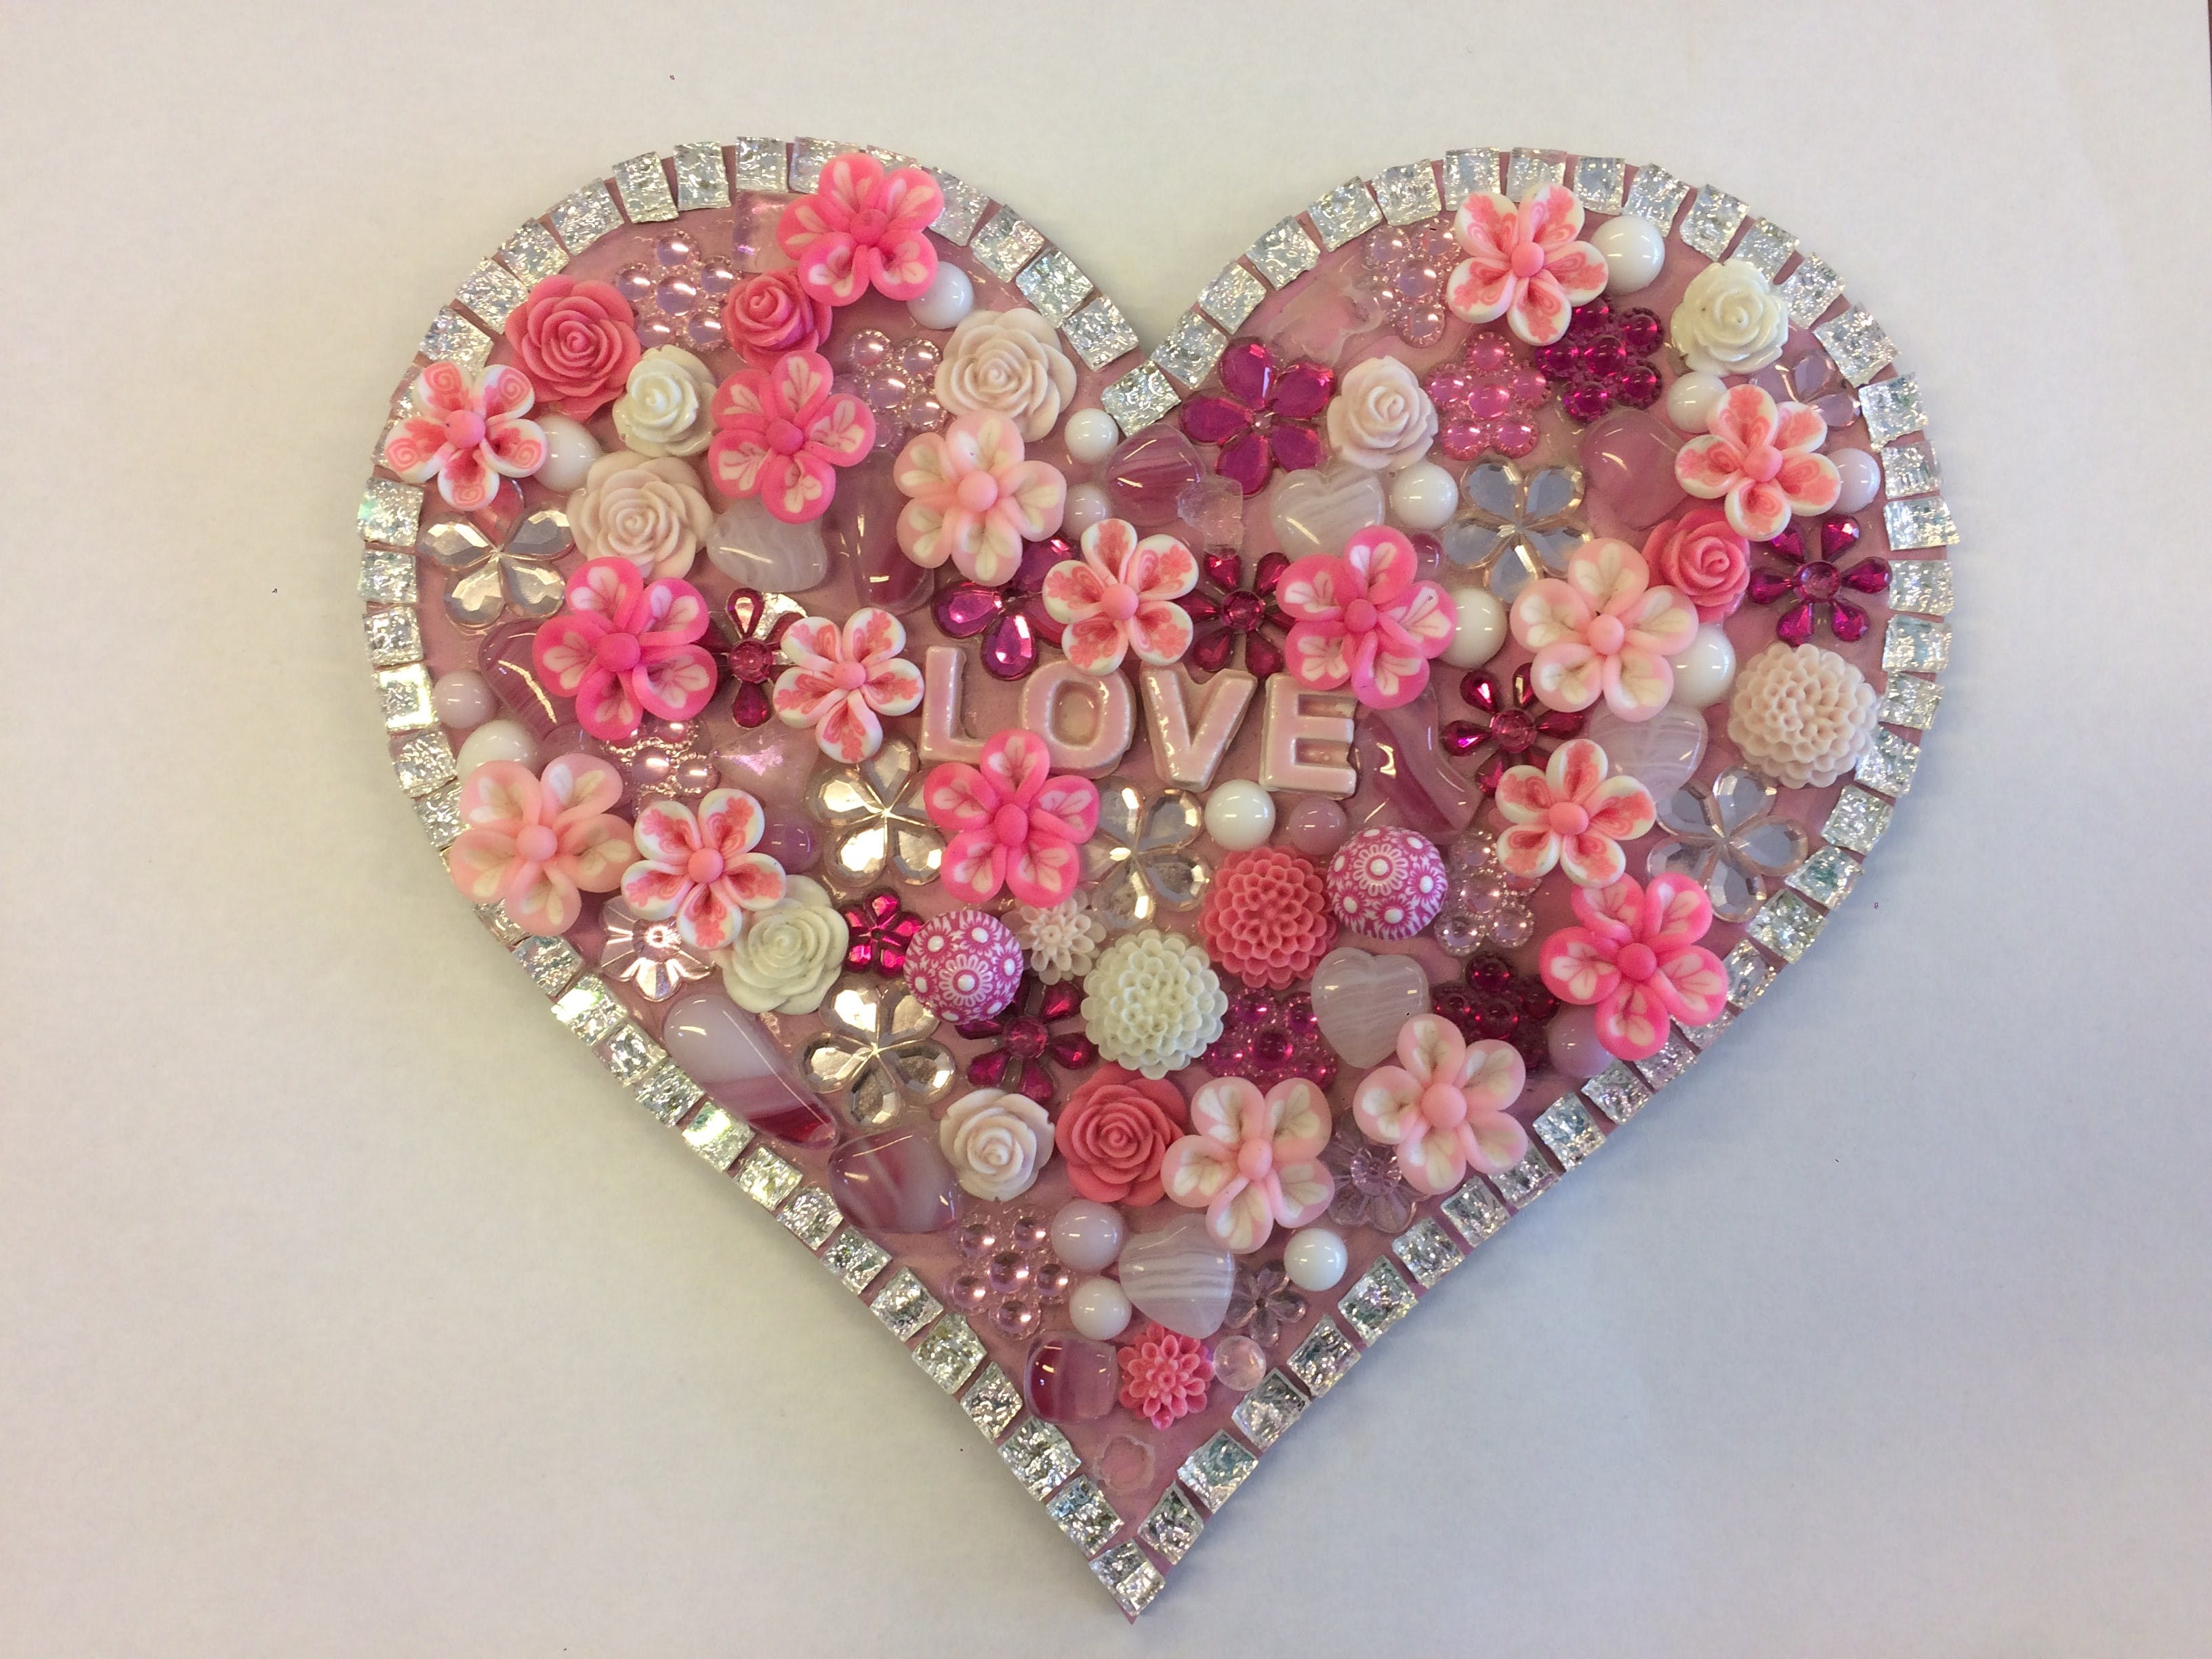 Flowers and Bling Mosaic Class for Kids - Sunshine Coast Tourism